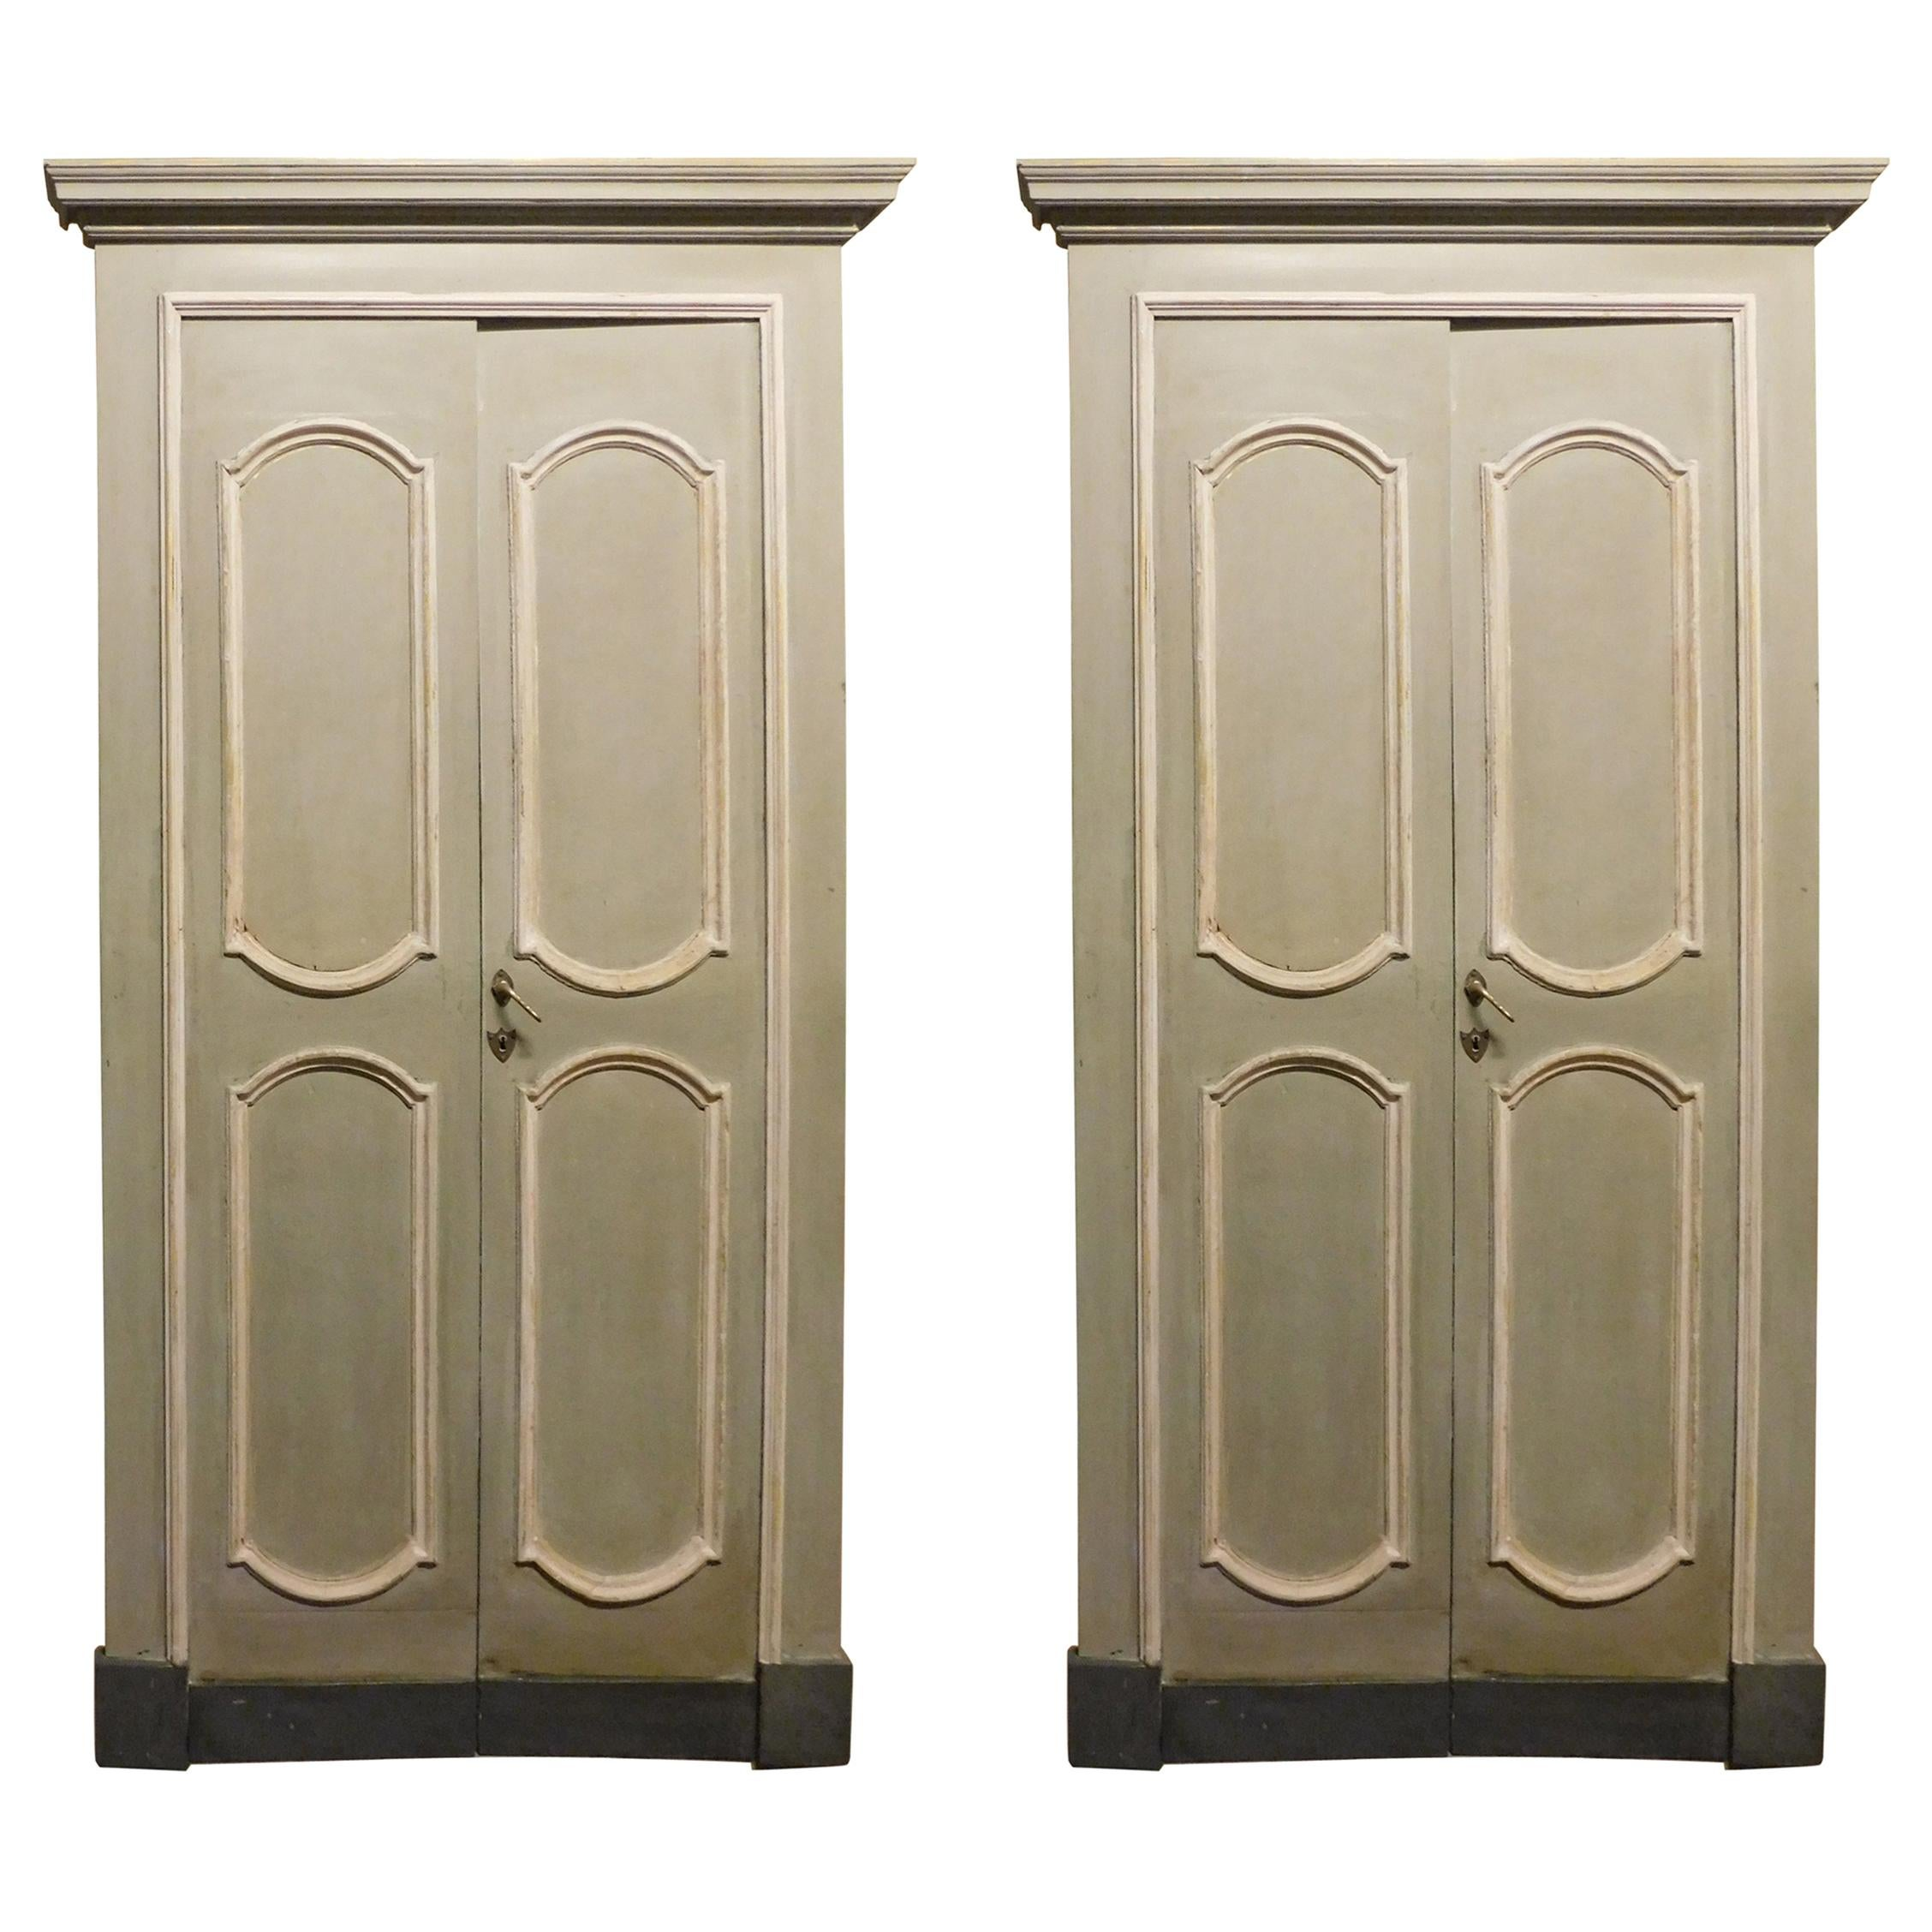 Antique Pair of Lacquered Double Doors with Frame, 18th Century, Italy